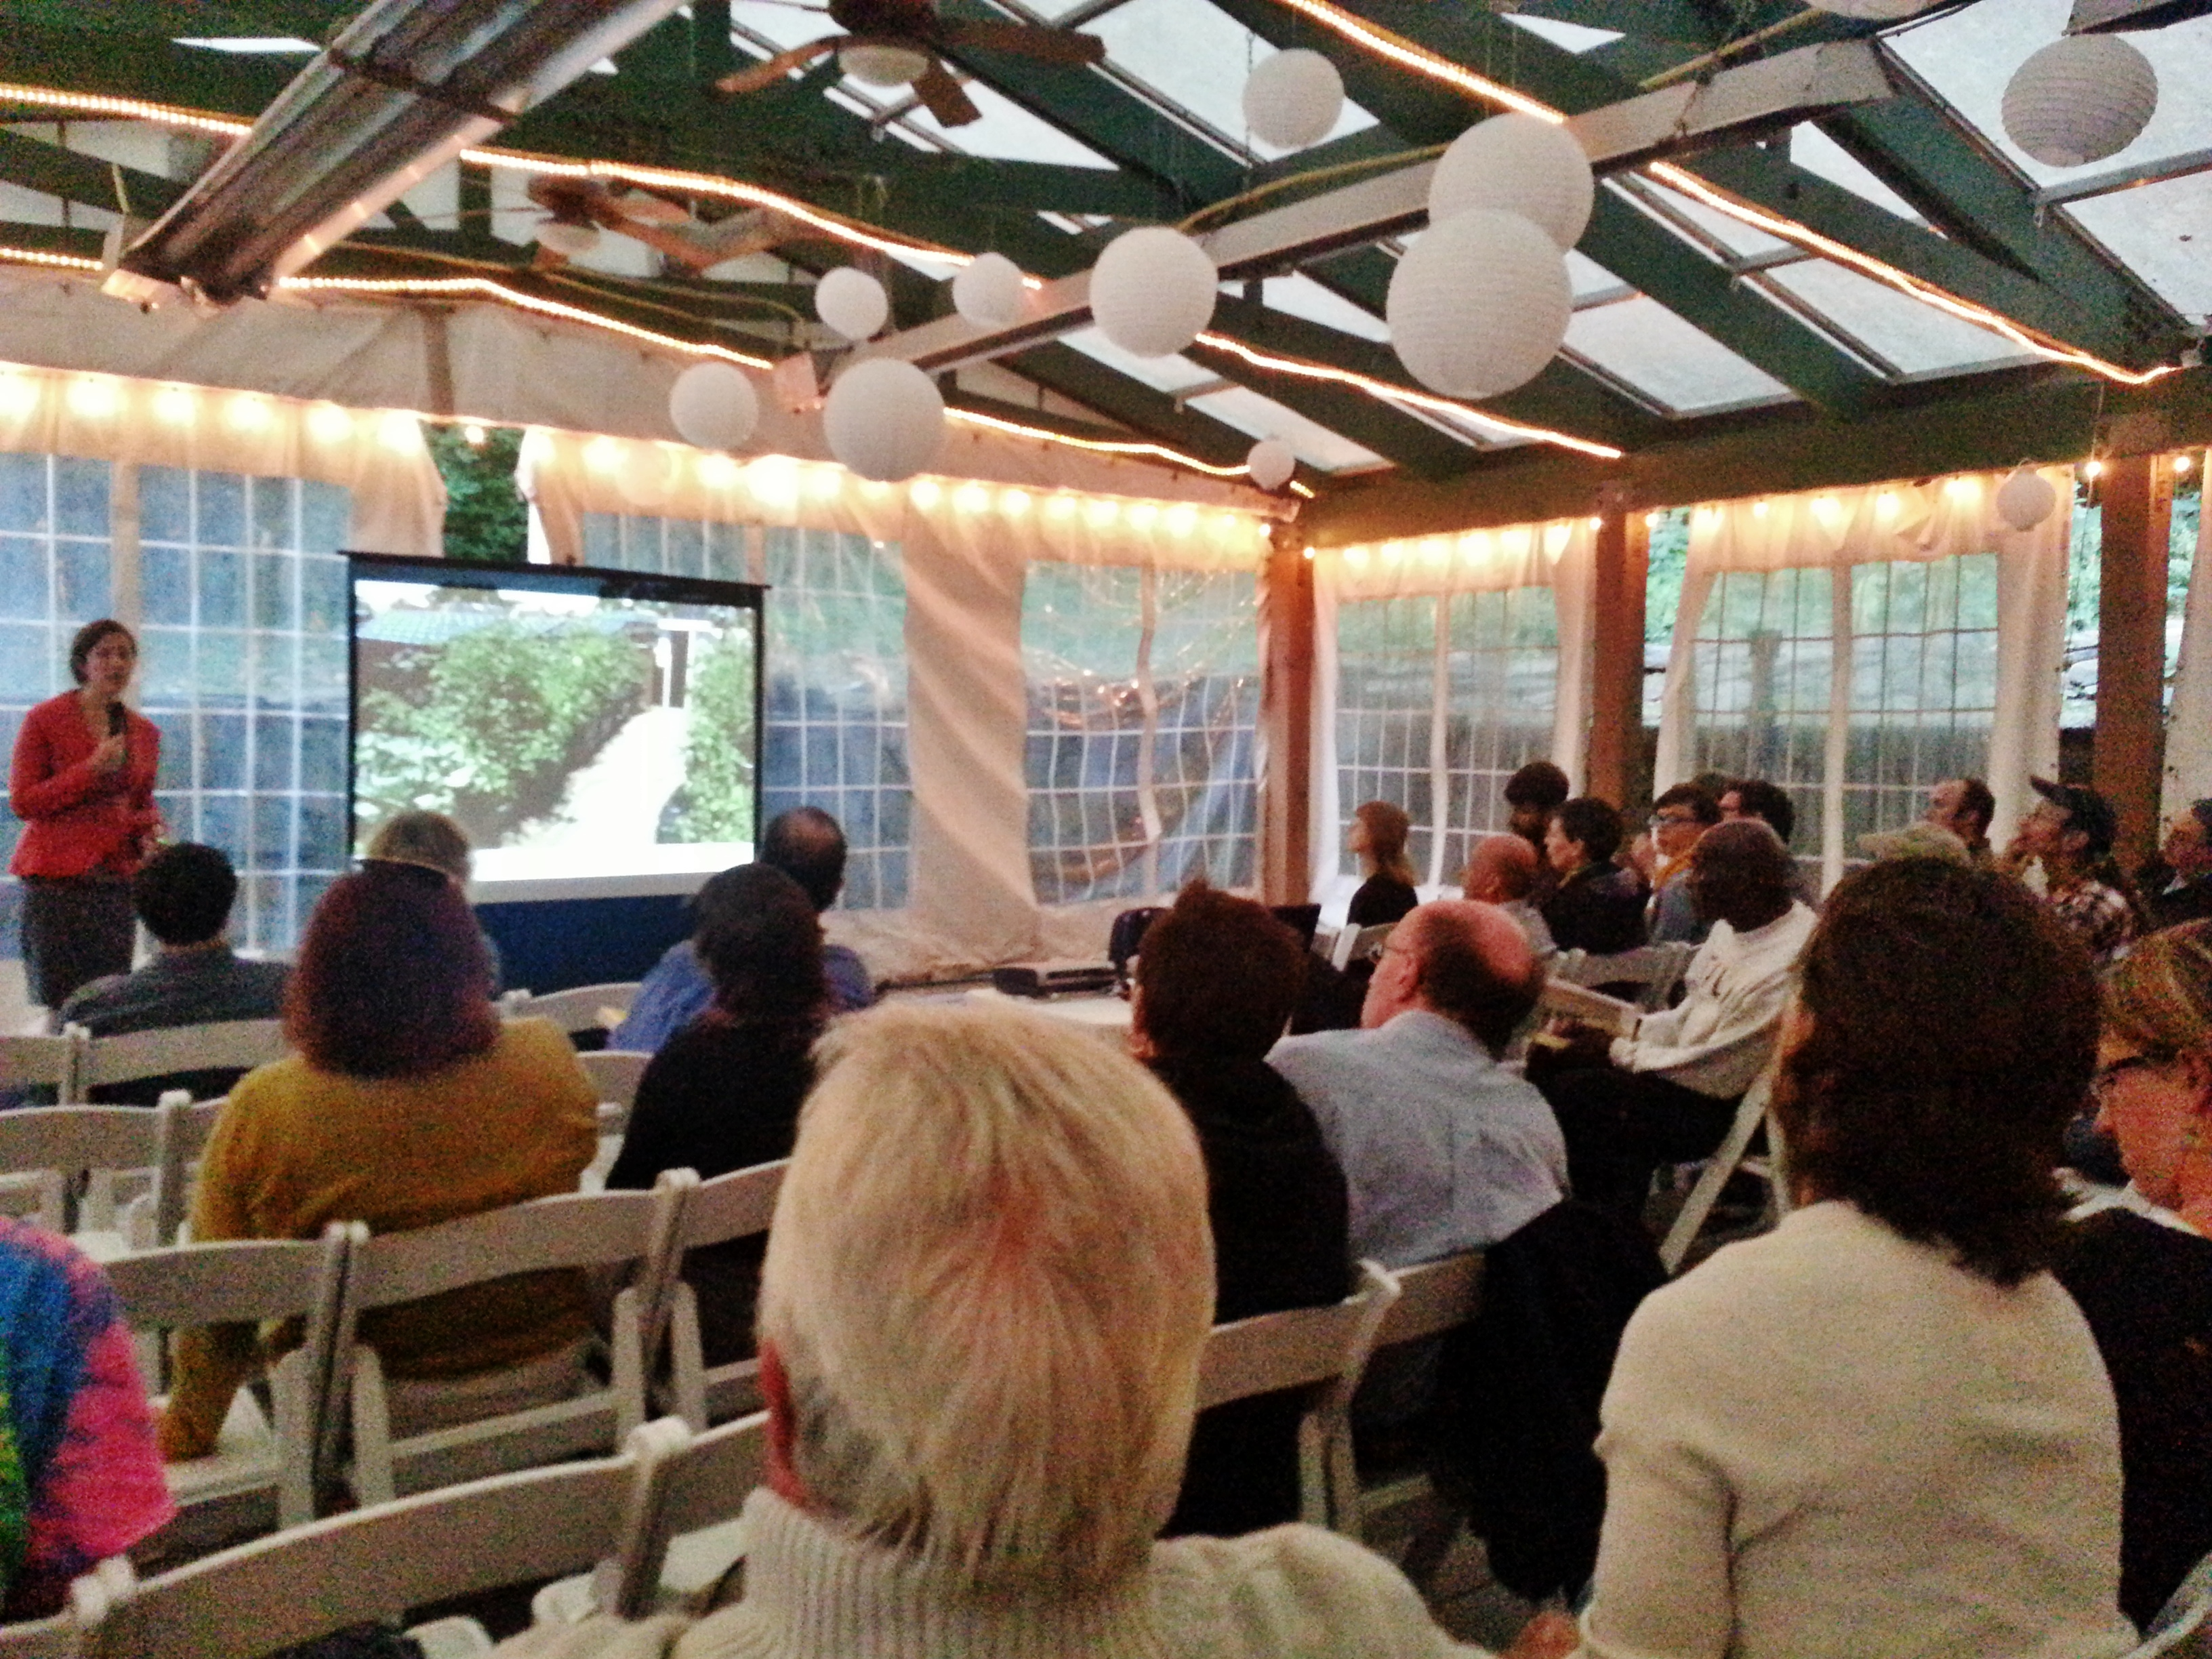 A group of attendees interested in rooftop agriculture gathered at the outside venue of the Green Valley Inn.